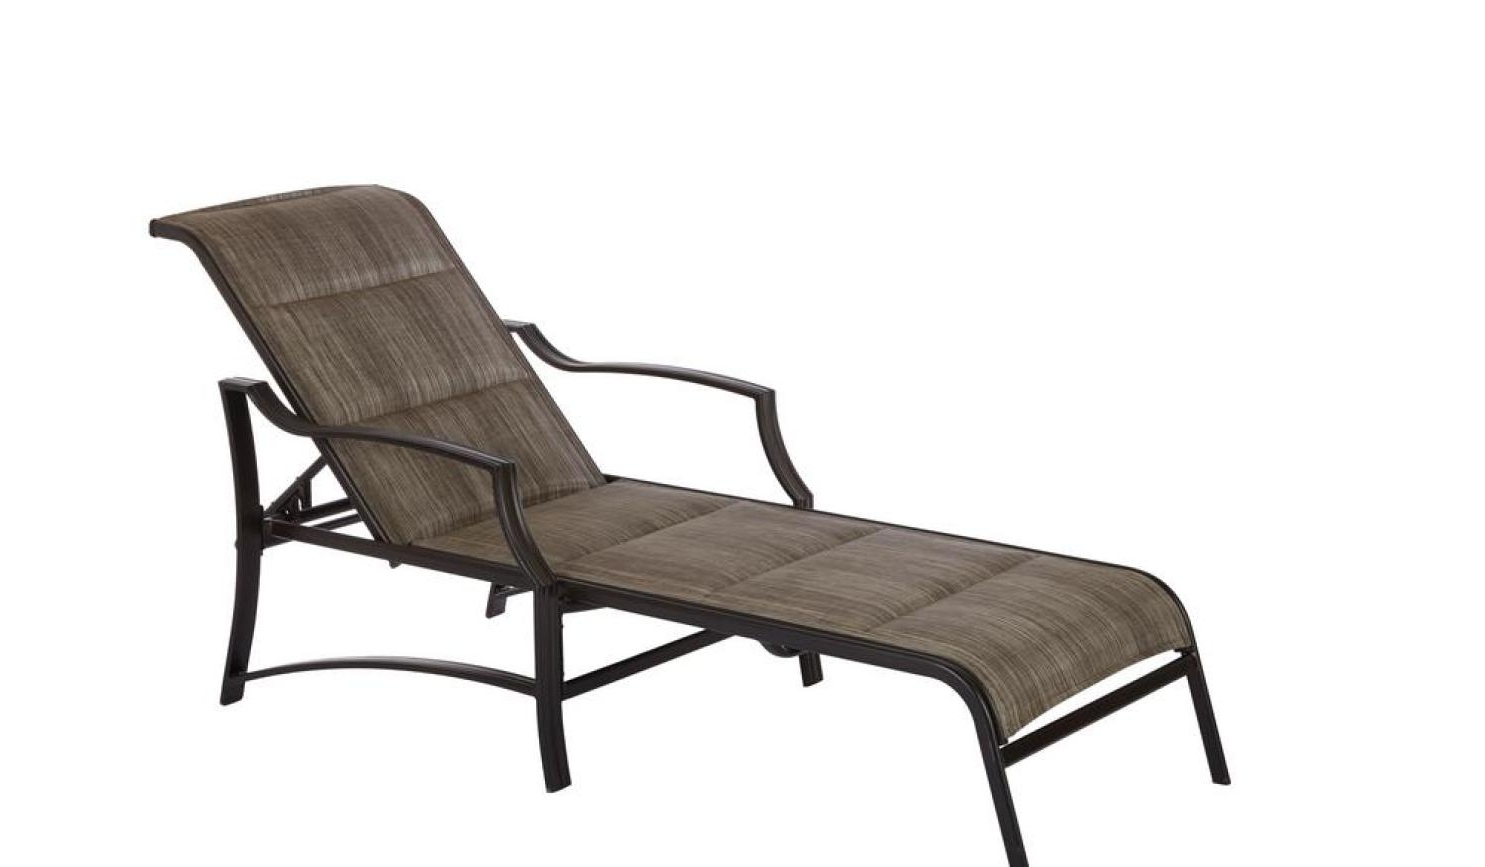 Sears Chaise Lounges Inside Favorite Chair : Shocking Tremendous Chaise Lounge Outdoor Sears Dreadful (View 14 of 15)